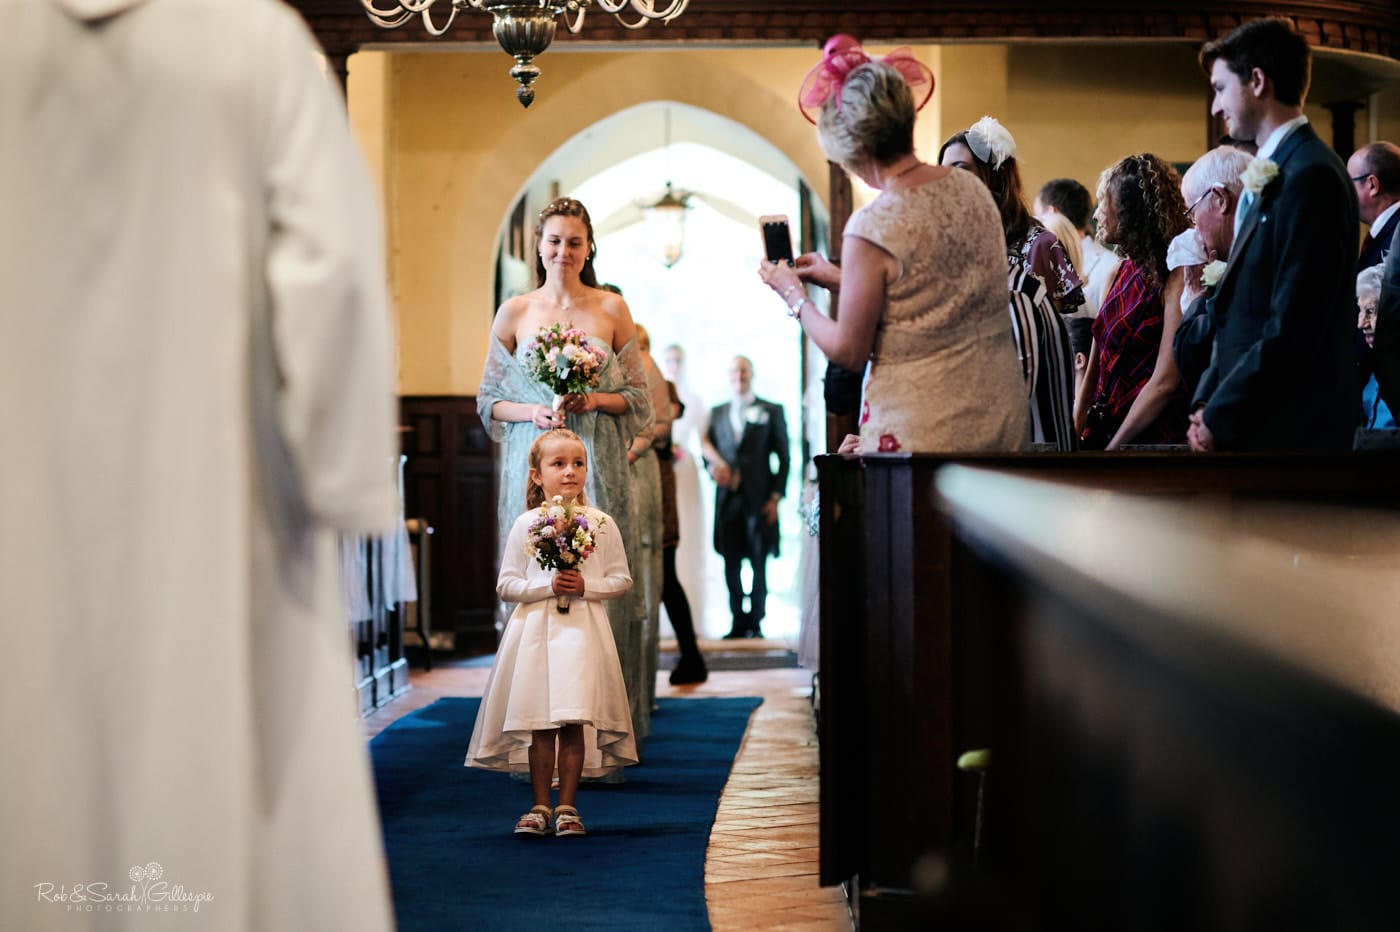 Flowergirl and bridesmaids enter church for wedding ceremony